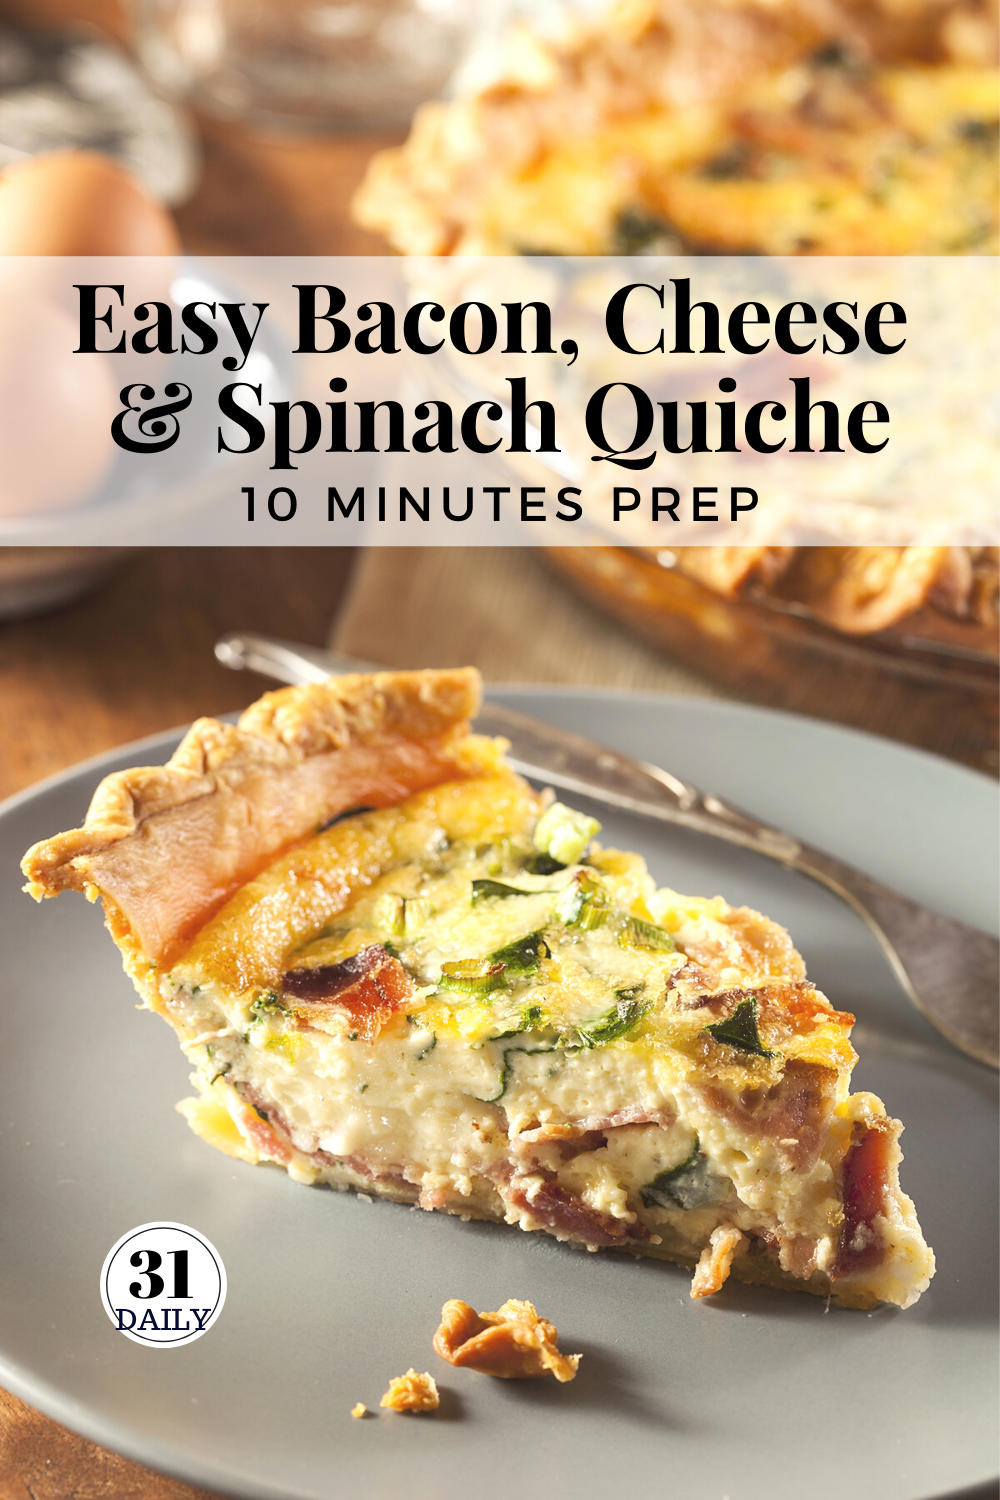 Easy Bacon Cheese And Spinach Quiche Recipe Quiche Recipes Easy Quiche Recipes Afternoon Tea Recipes